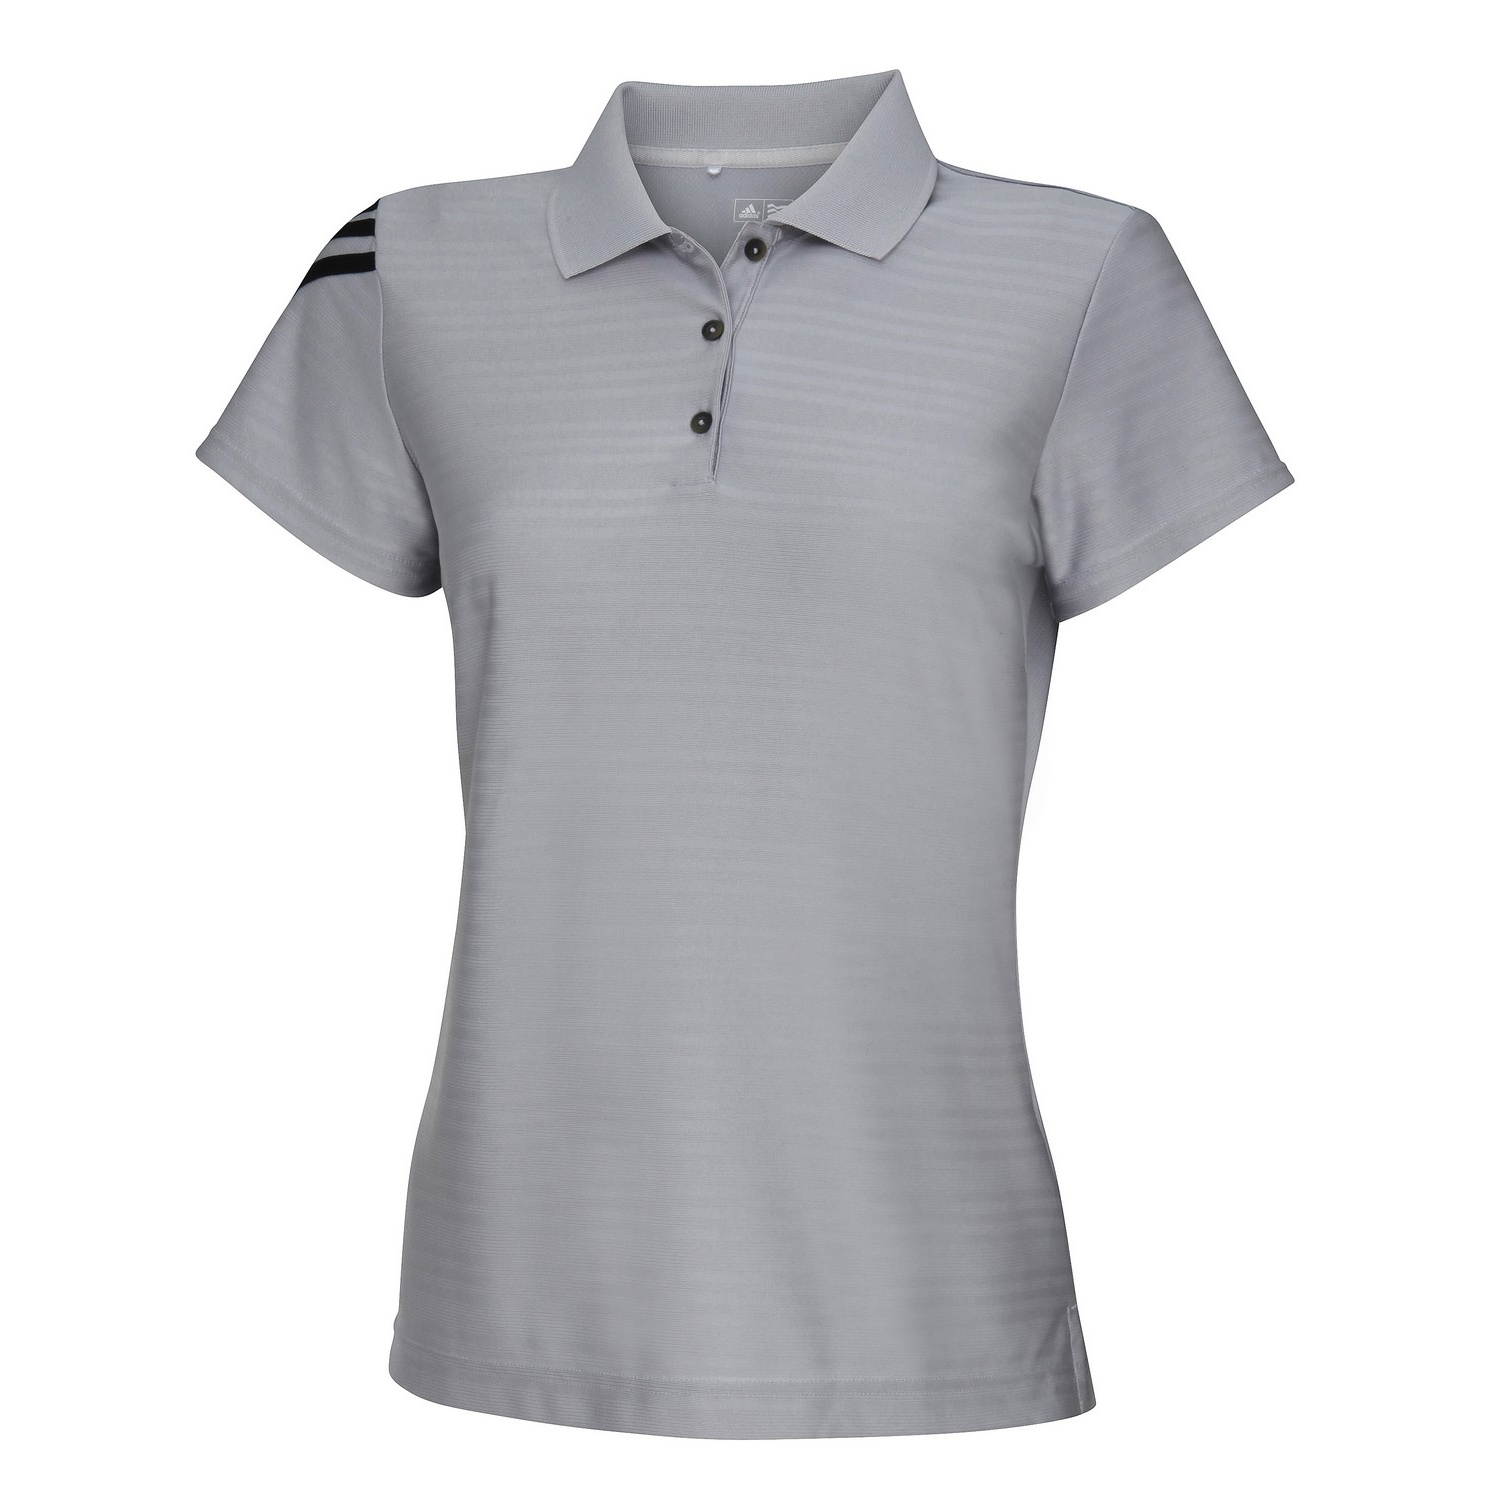 Adidas Womens Ladies Corporate 3 Stripe Short Sleeve Polo